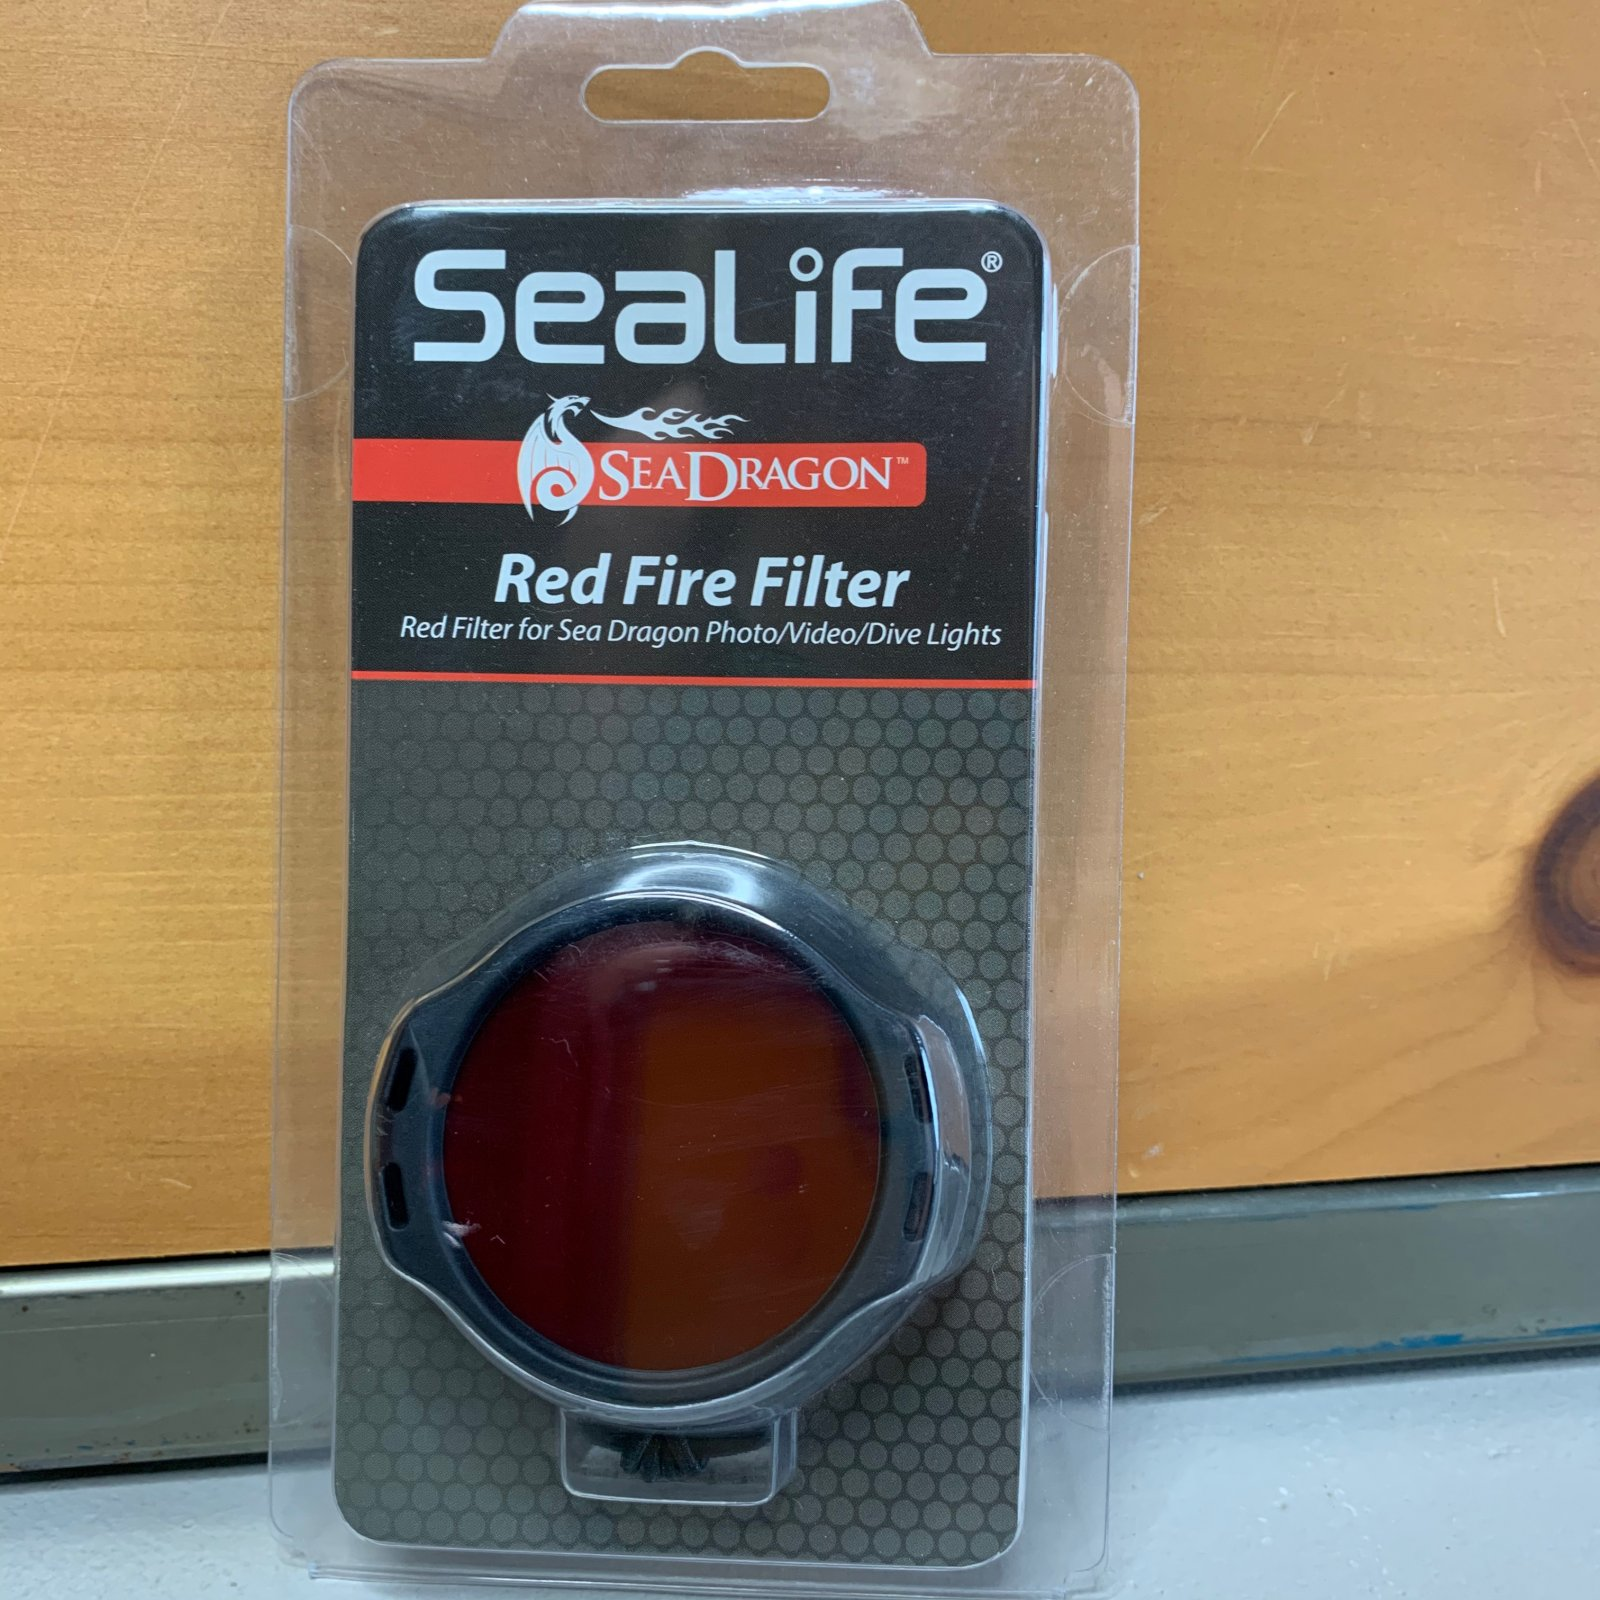 Red Fire Filter (Photo/Dive/Video)